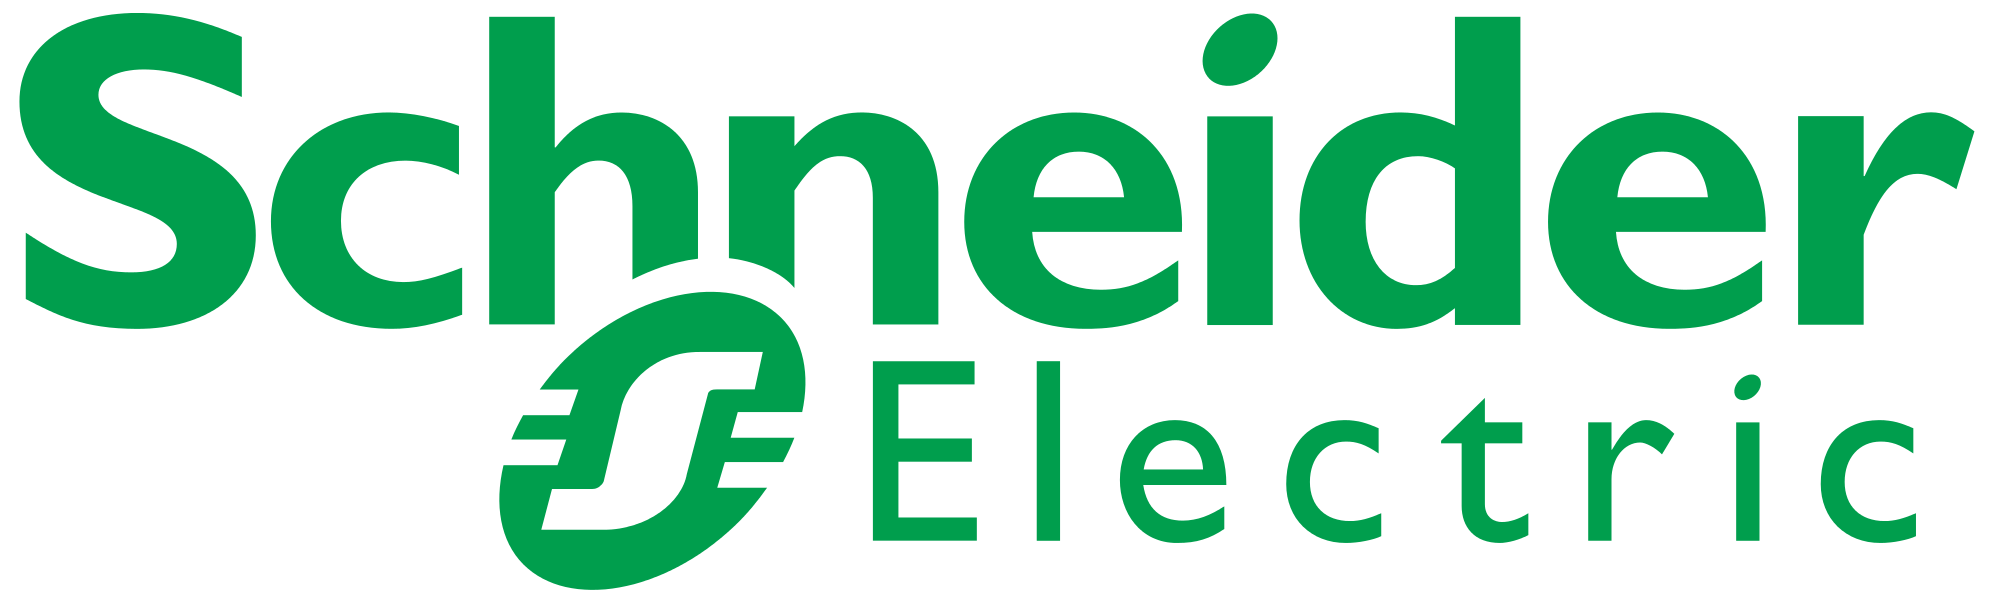 Schneider Electric Website